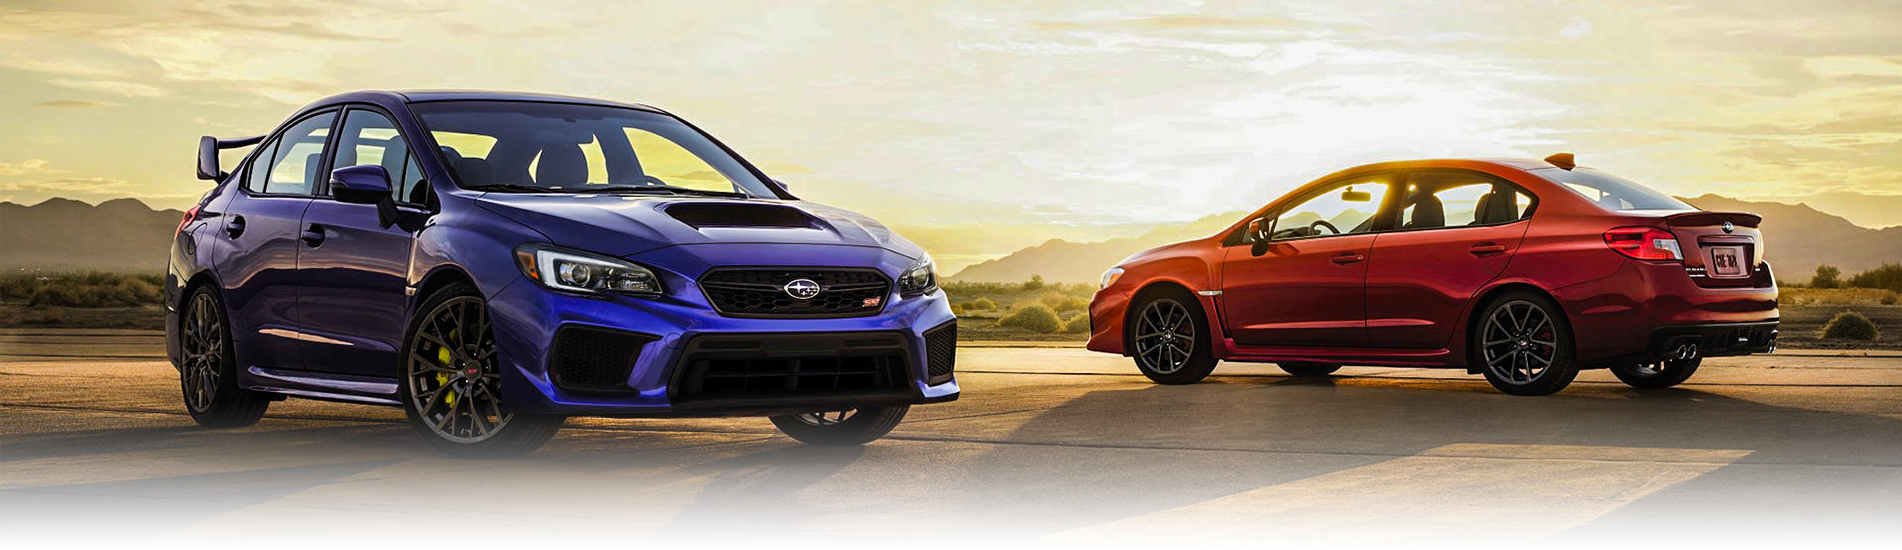 26 The Wrx Subaru 2019 Price Design And Review